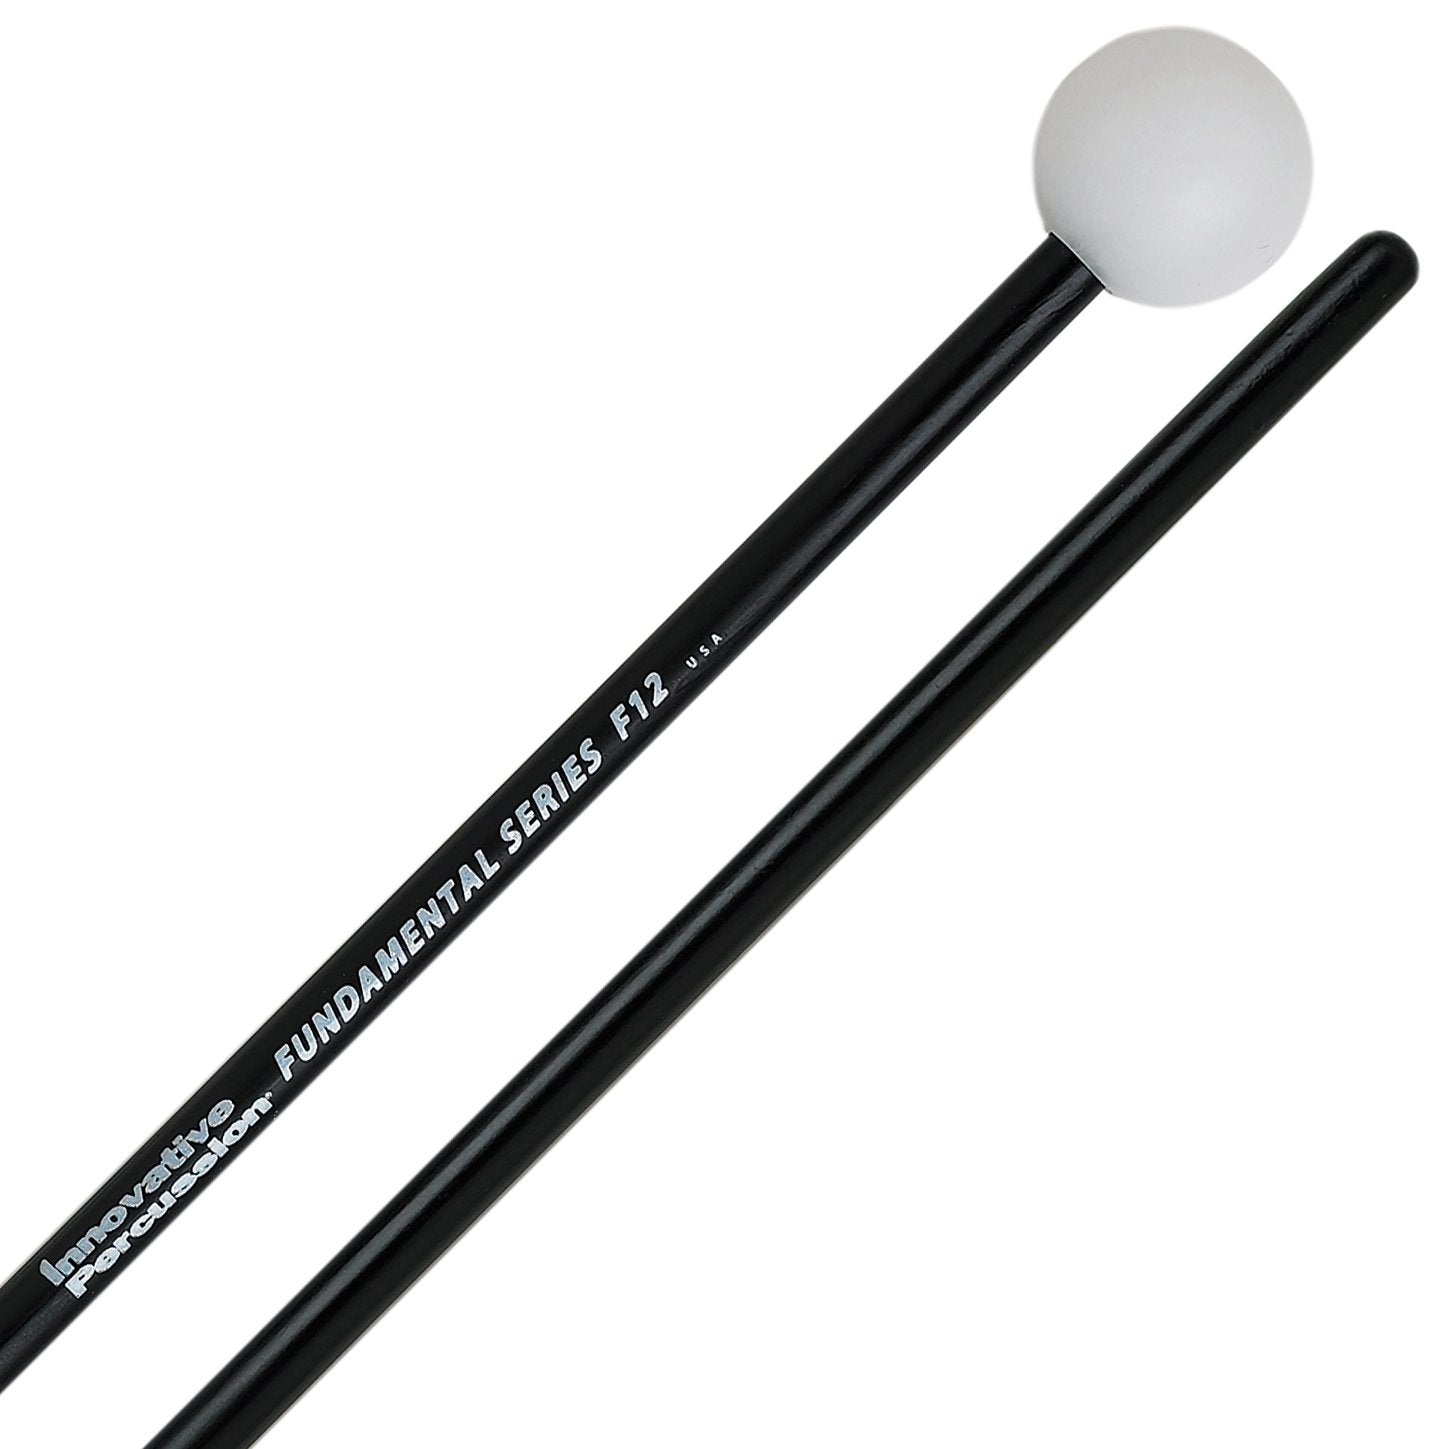 Innovative Percussion - Fundamental Series F12 Medium Hard Concert Keyboard Mallets (Birch)-Percussion-Innovative Percussion-Music Elements